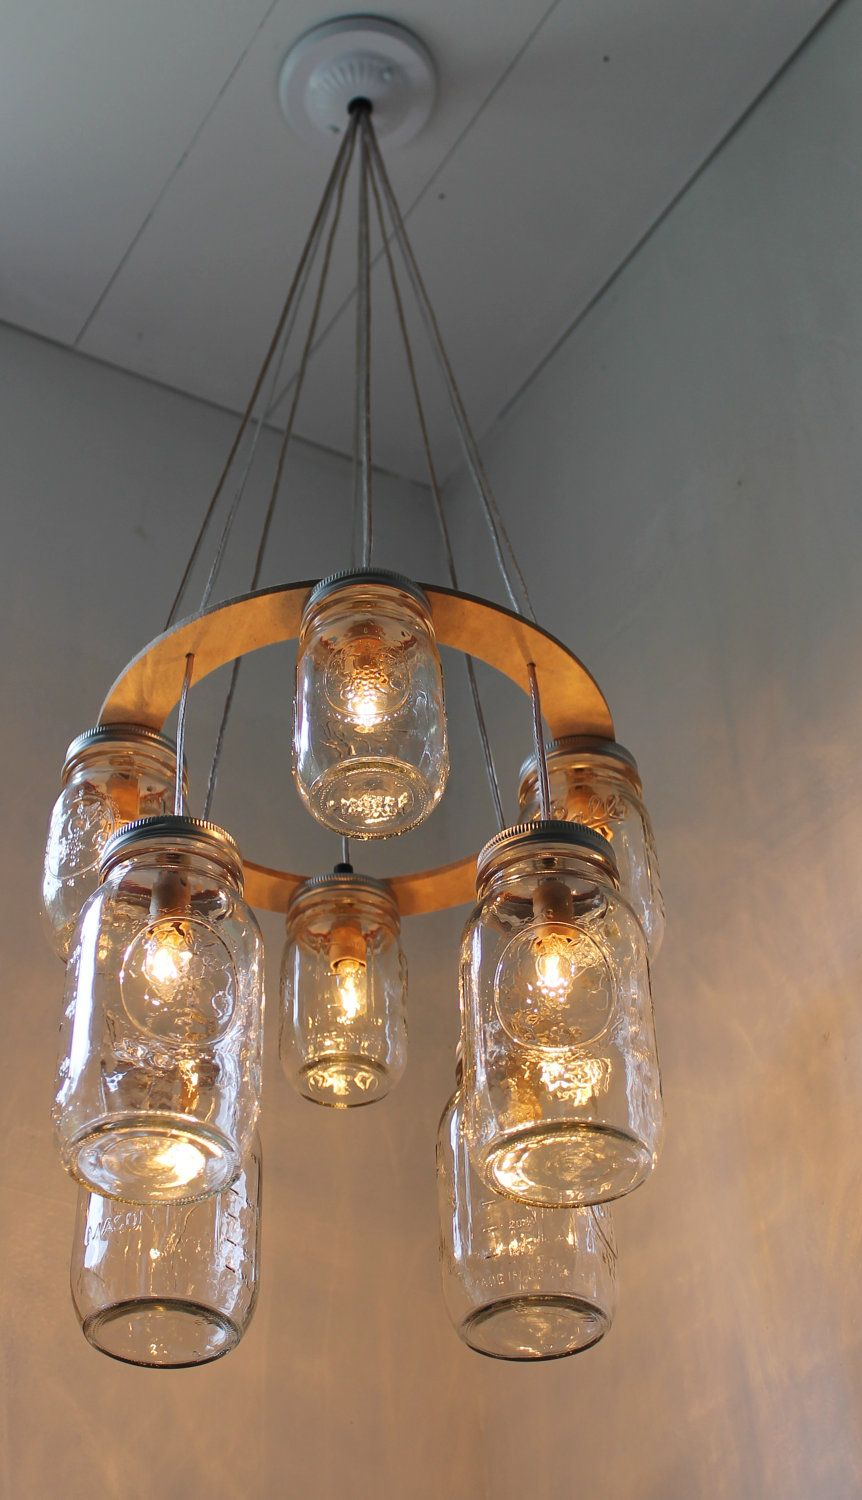 Double decker mason jar chandelier upcycled hanging mason jar double decker mason jar chandelier upcycled hanging mason jar lighting fixture direct hardwire bootsngus arubaitofo Gallery